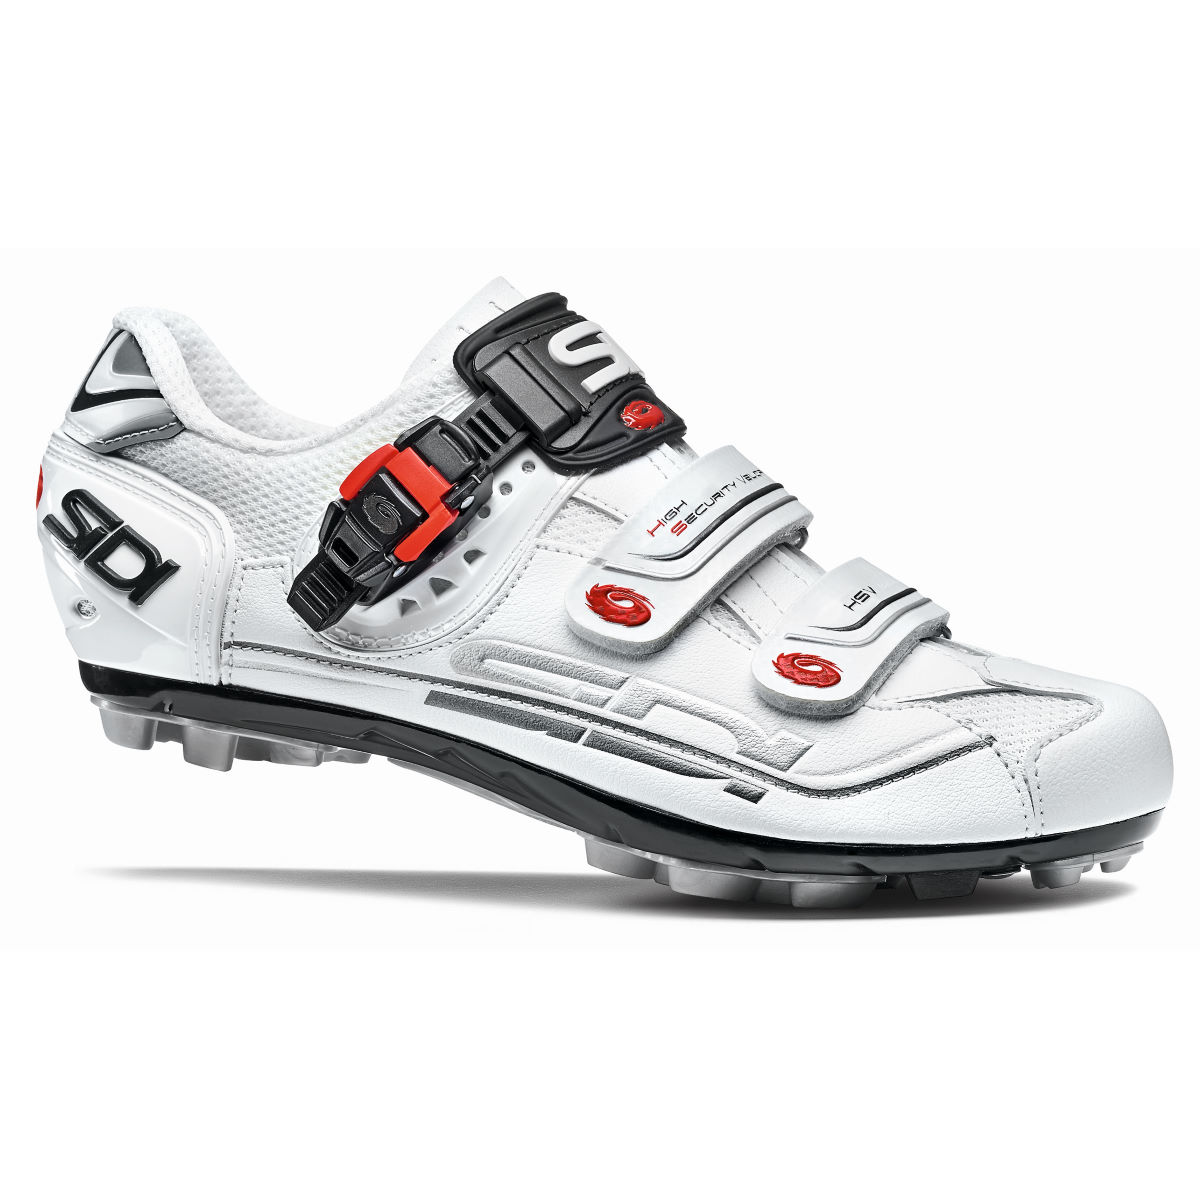 Sidi Eagle 7 MTB Shoes - 46 White/White | Offroad Shoes